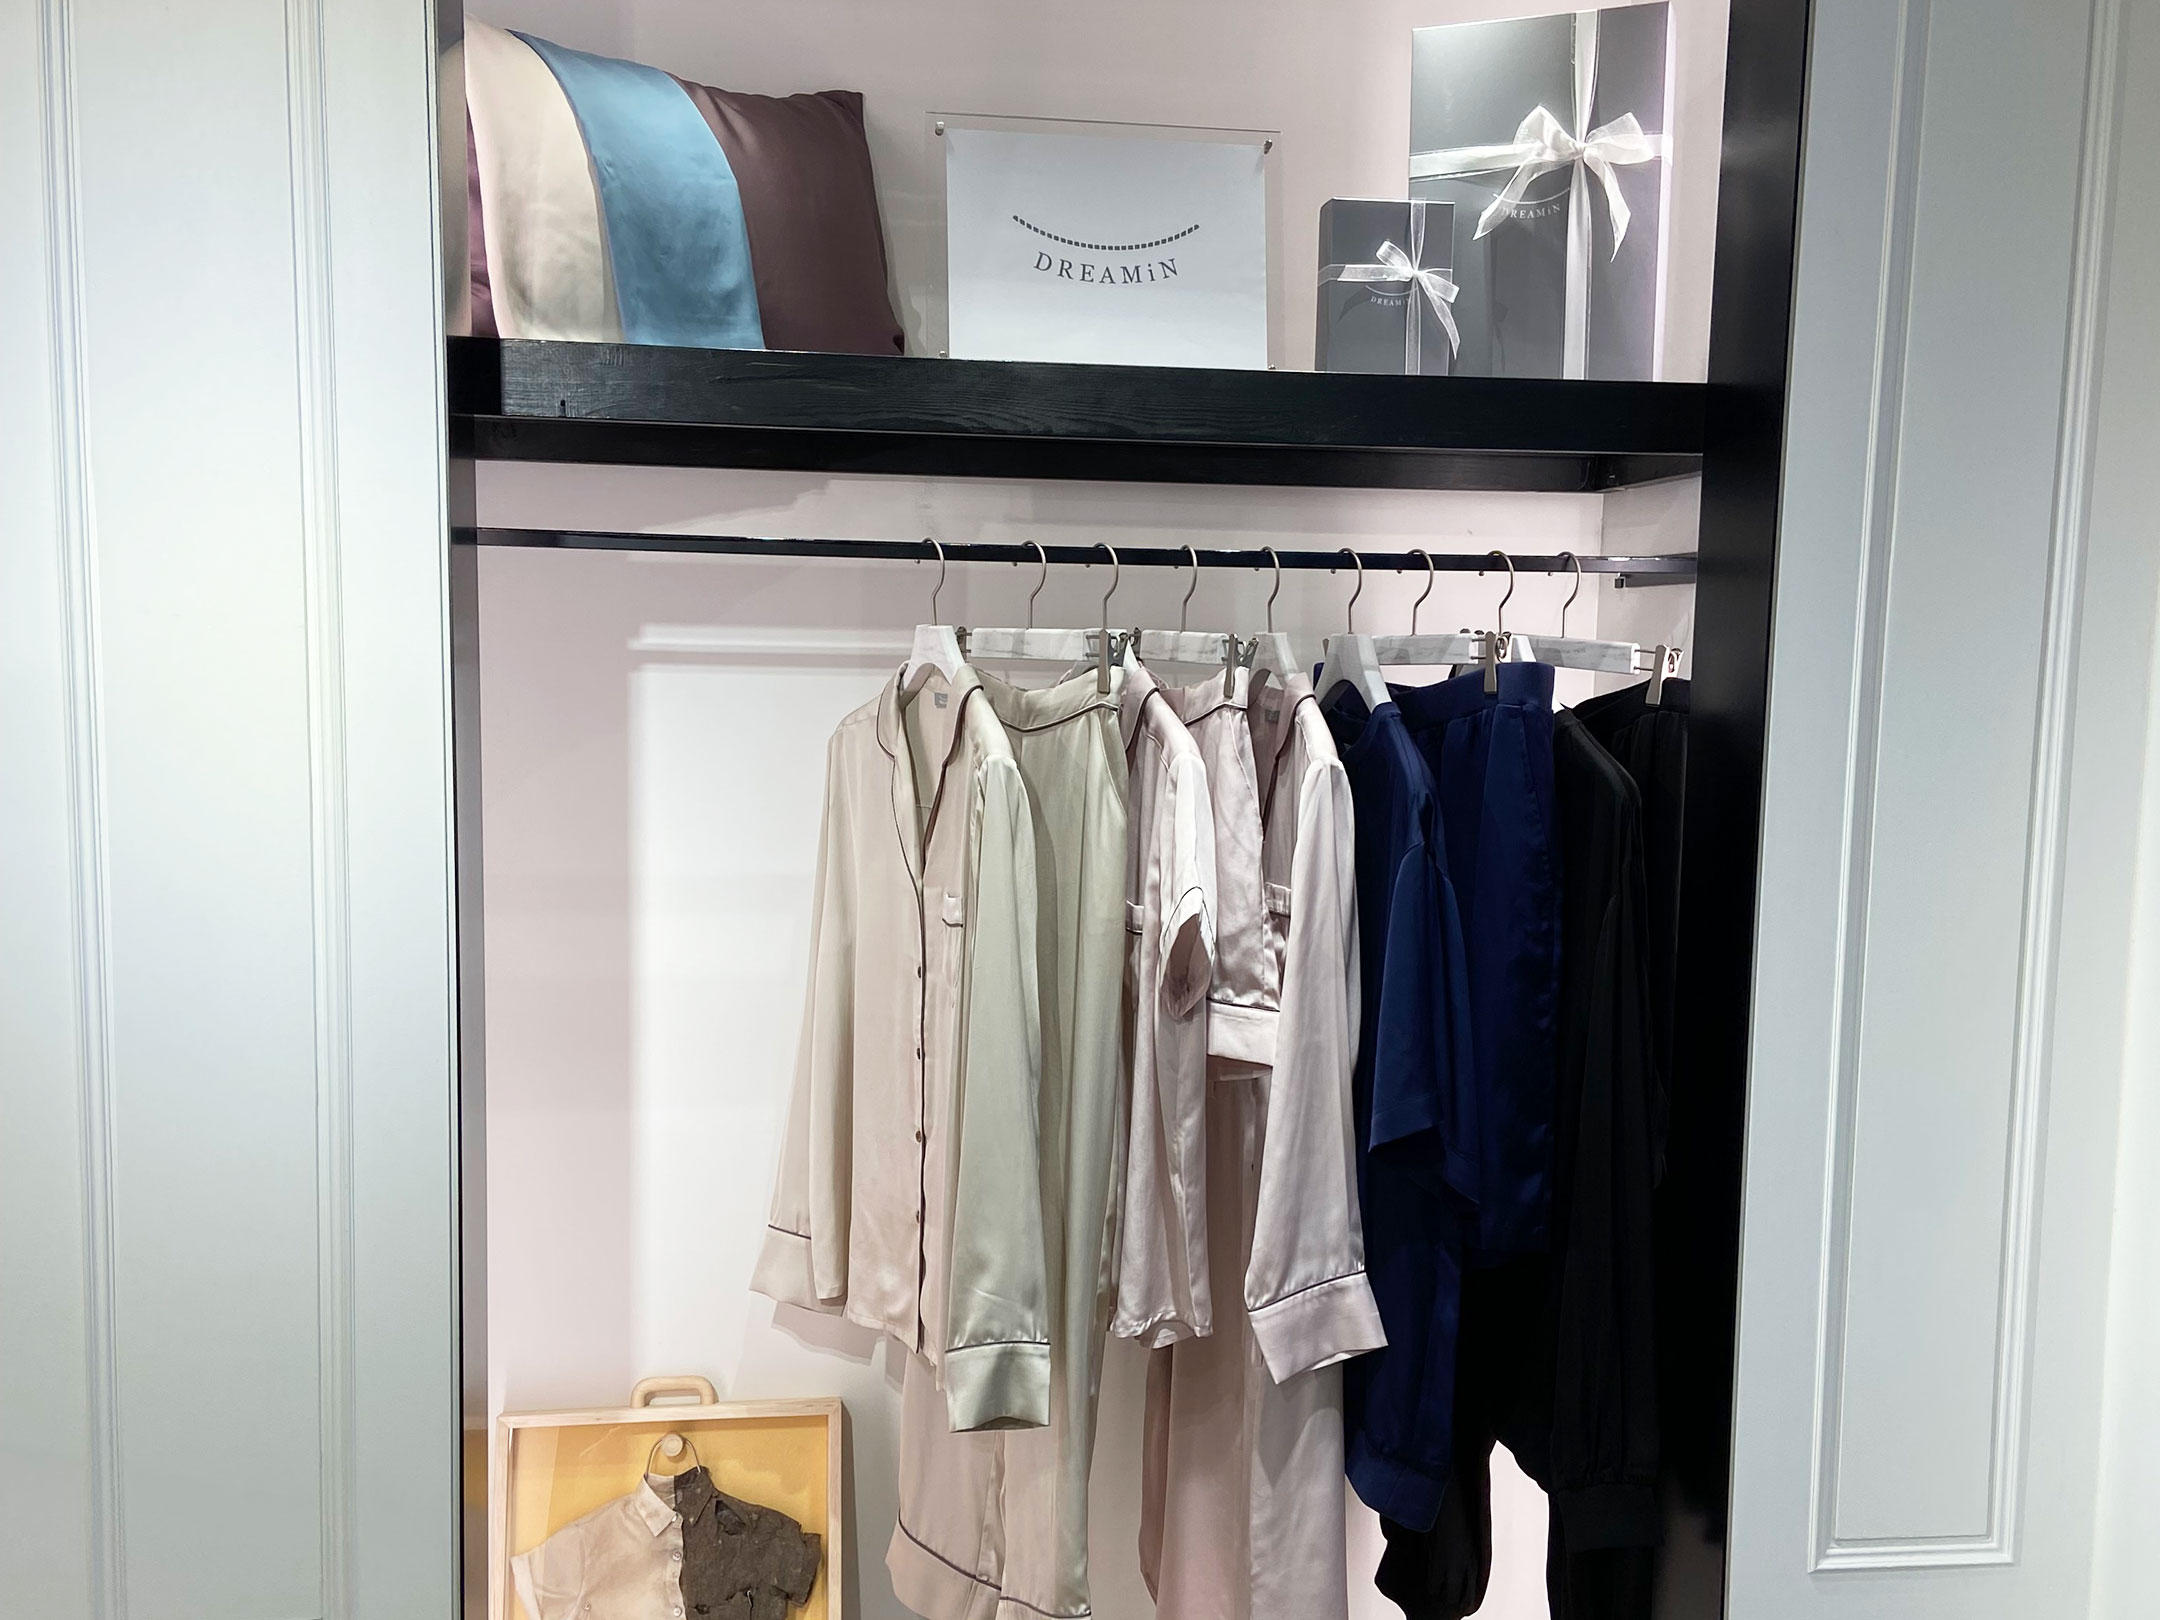 DREAMiN POP-UP STORE at The Crafted GINZA